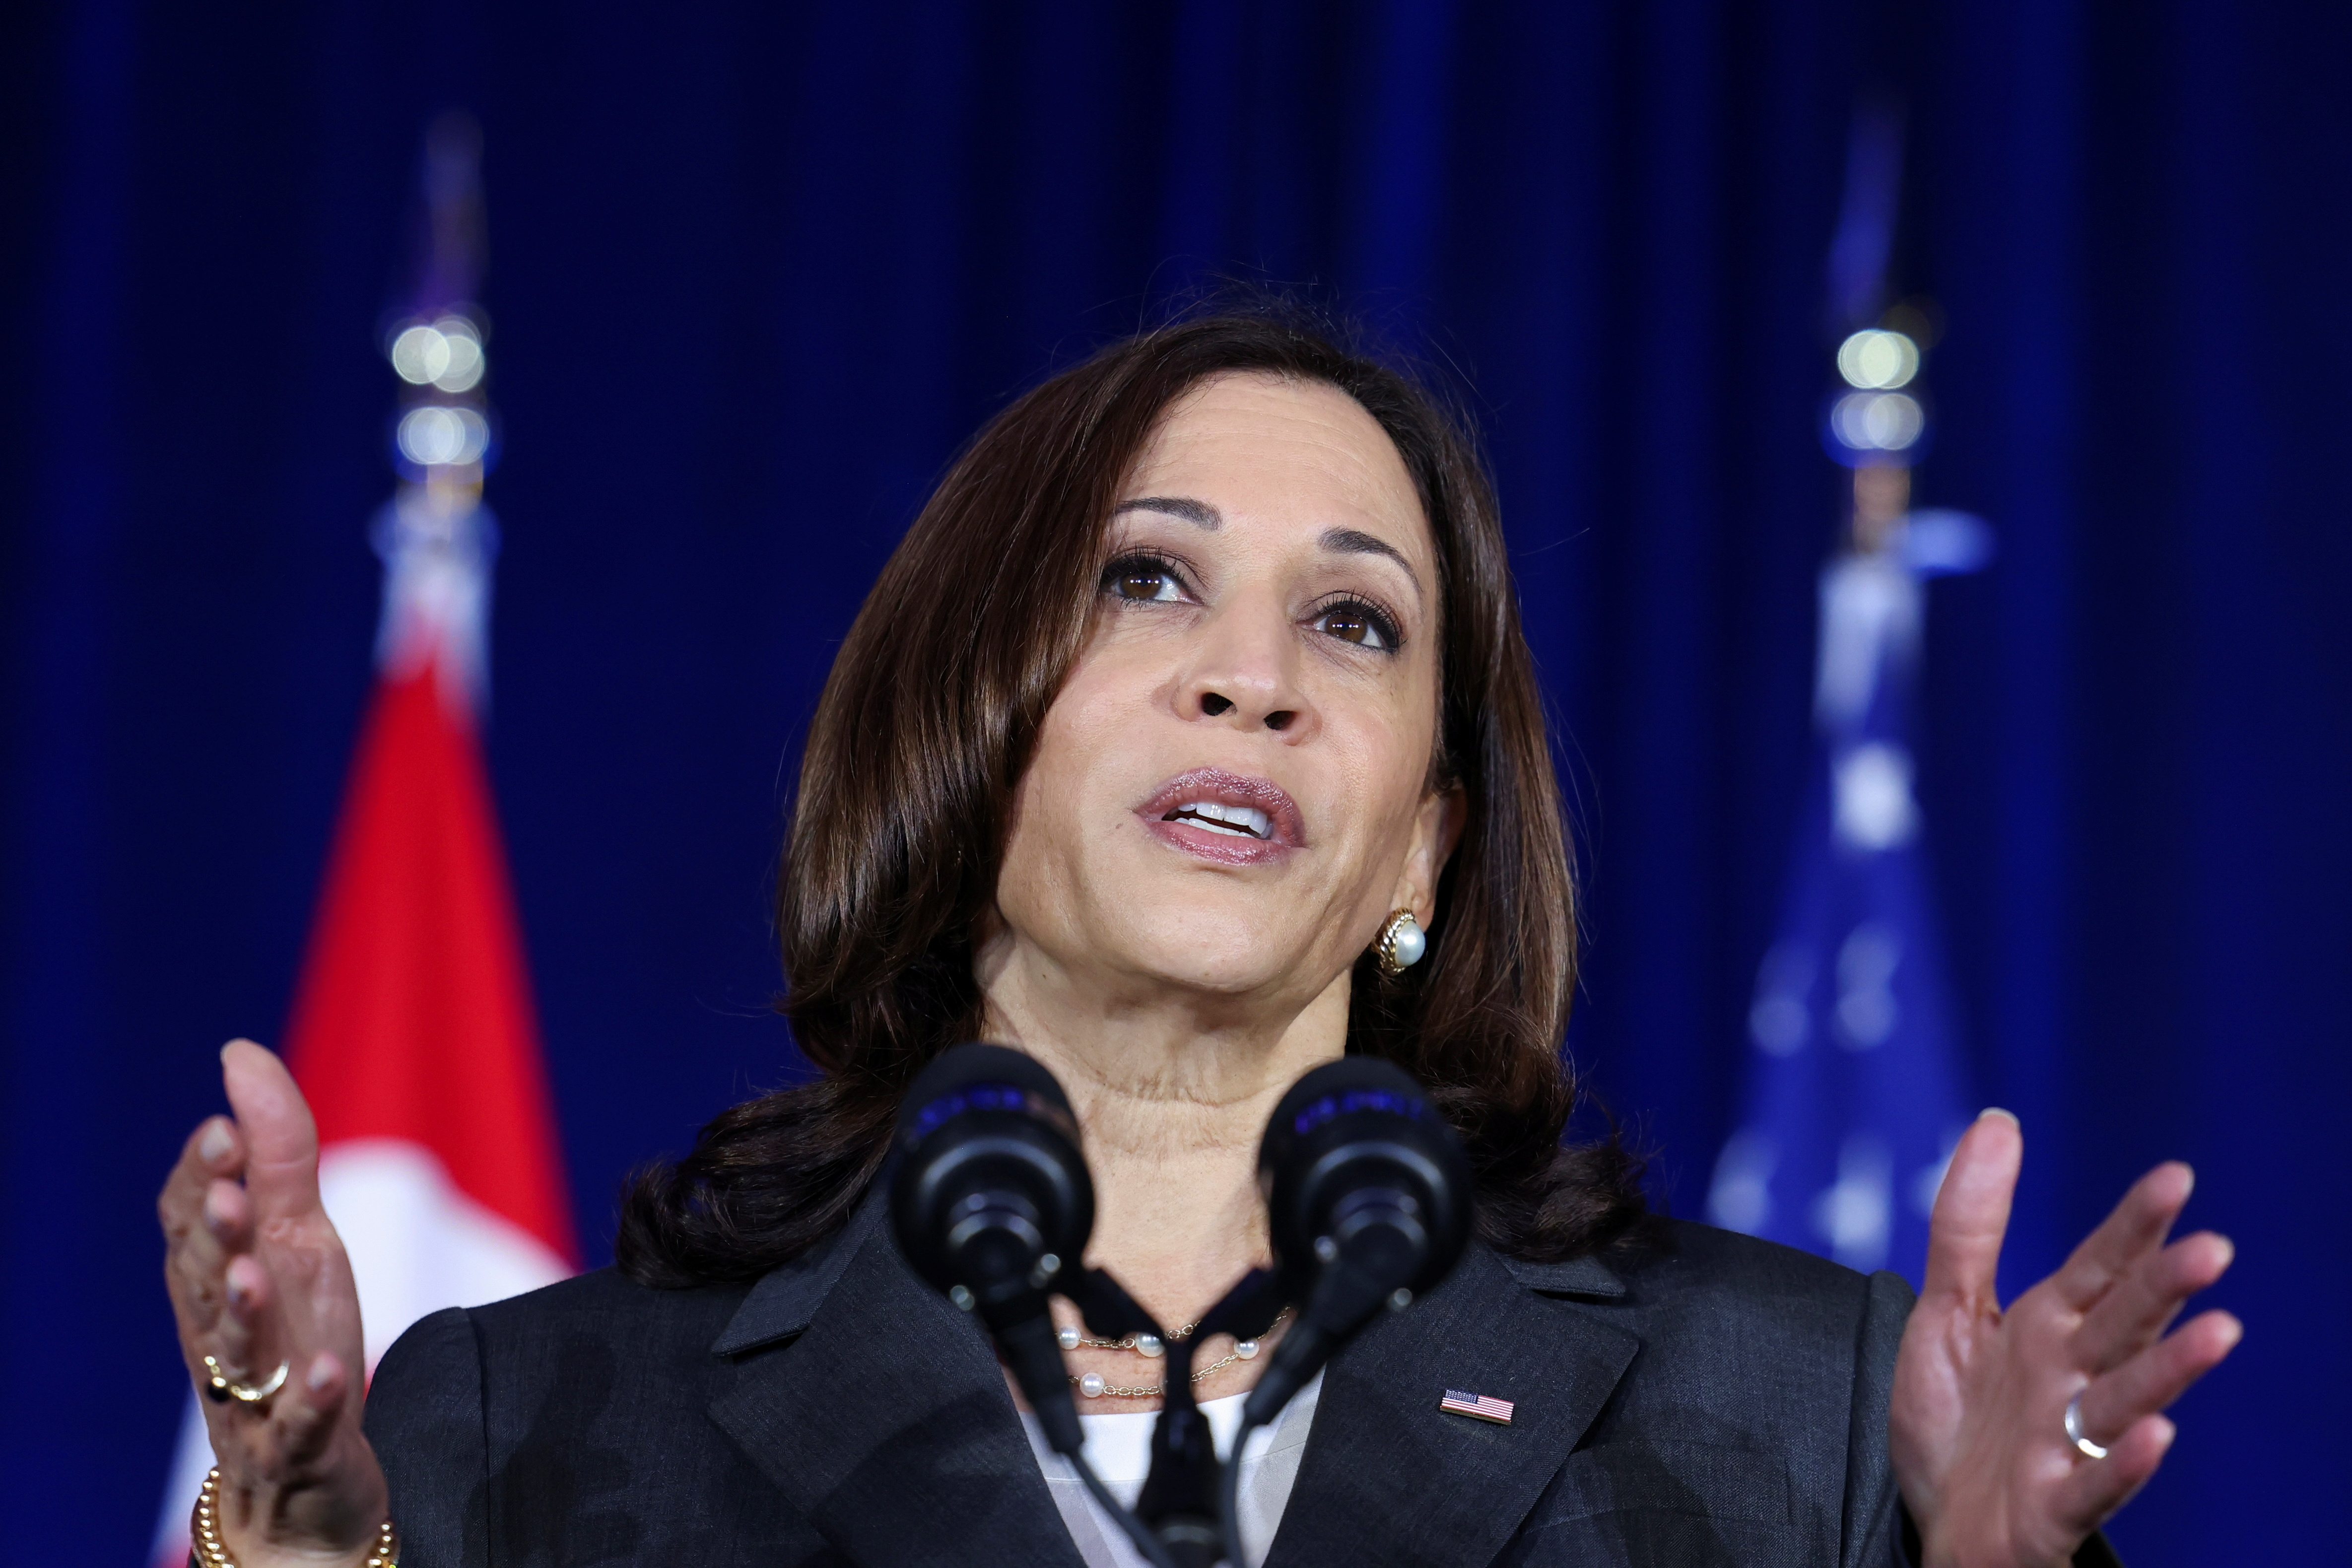 U.S. Vice President Kamala Harris delivers a speech at Gardens by the Bay in Singapore before departing for Vietnam on the second leg of her Asia trip, August, 24, 2021. REUTERS/Evelyn Hockstein/Pool